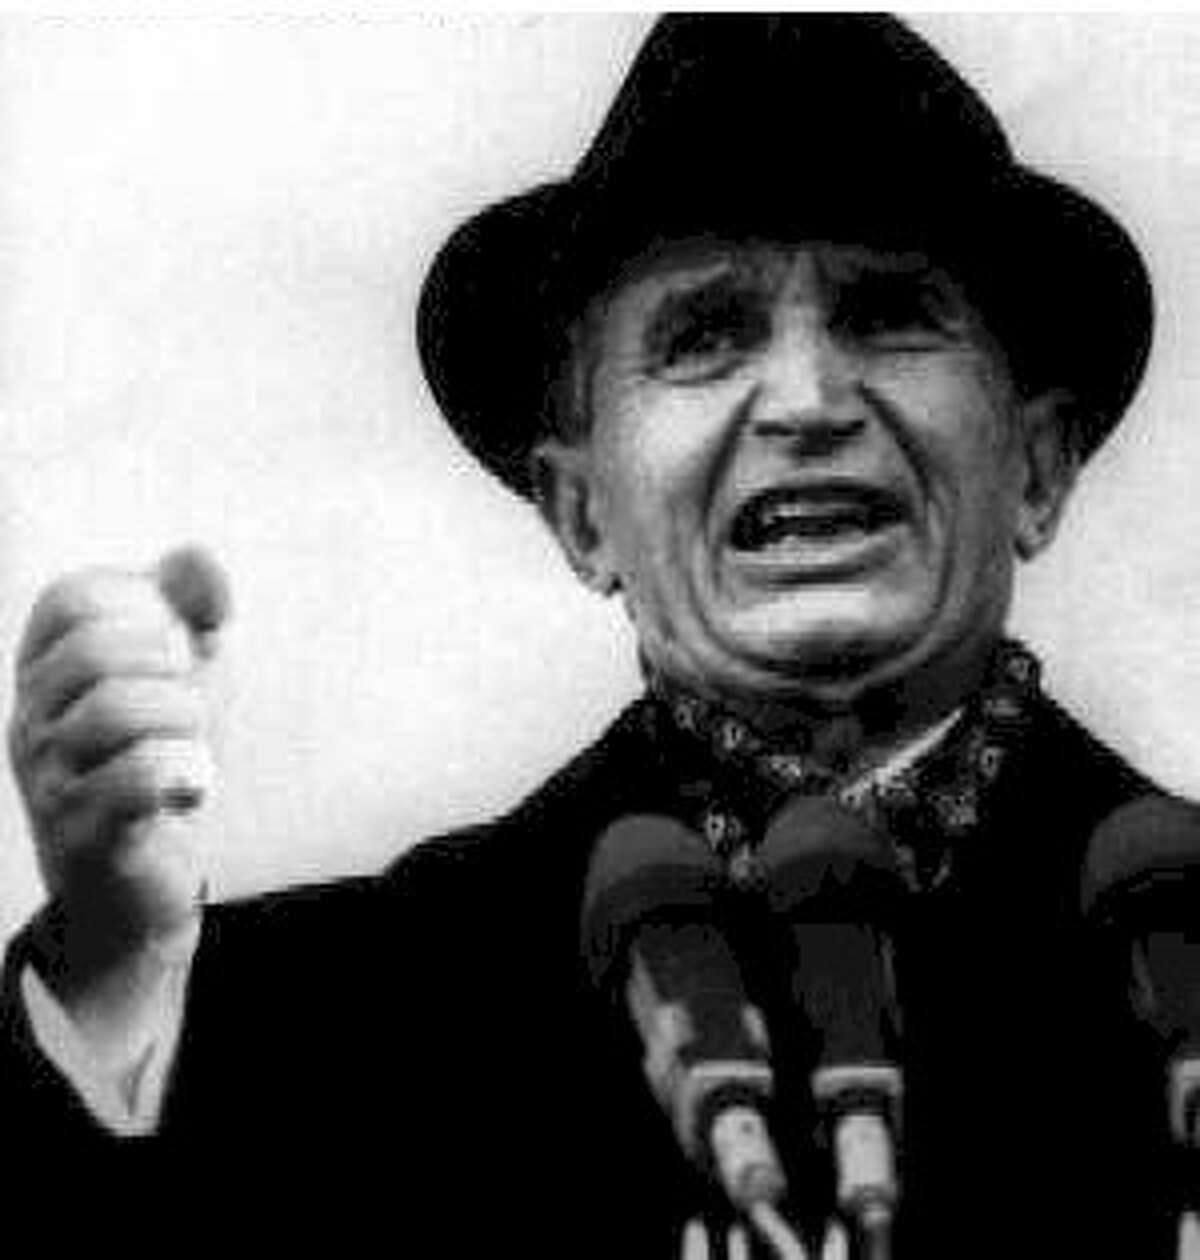 Romanian dictator Nicolae Ceausescu and his wife Elena were rumored to have kept their own personal witch while they ruled their nation with iron fists. They were executed as their communist regime collapsed.